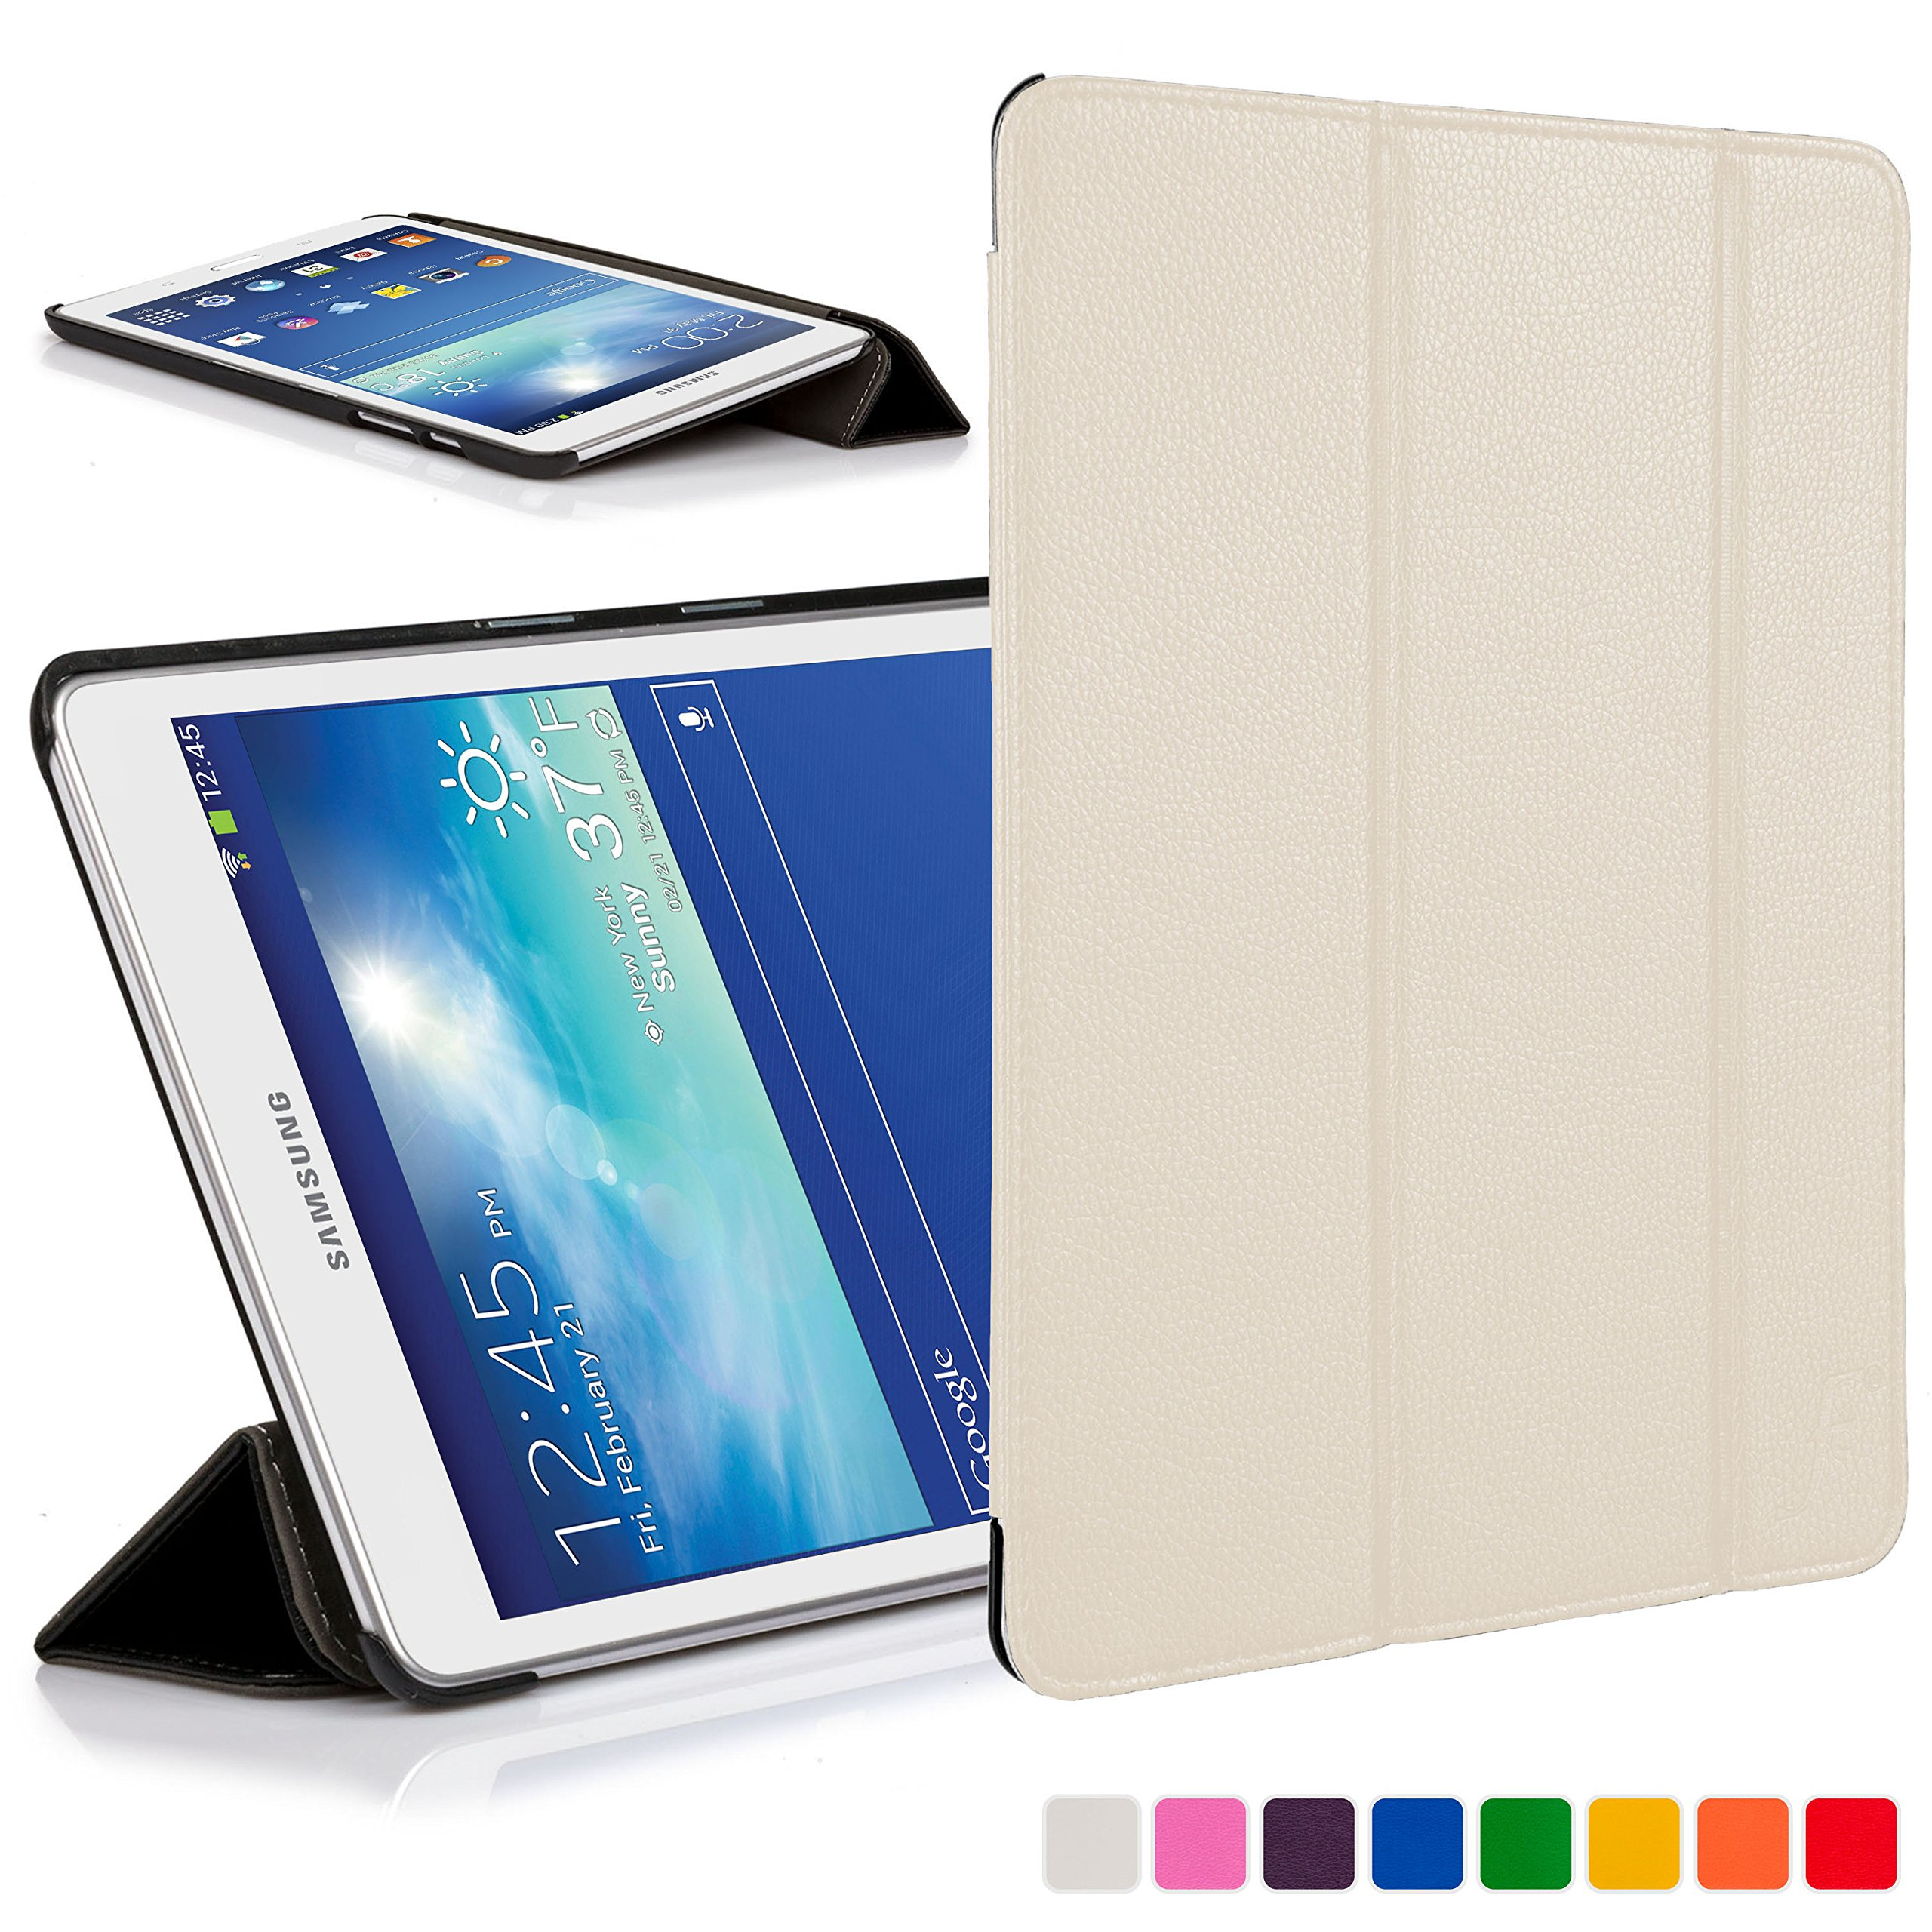 a6f675a44e9 You re viewing  Forefront Cases® Samsung Galaxy Tab 3 Lite 7.0   Tab E Lite  7.0 Leather Folding Smart Case Cover Stand (WHITE) £29.99 £8.99 inc.